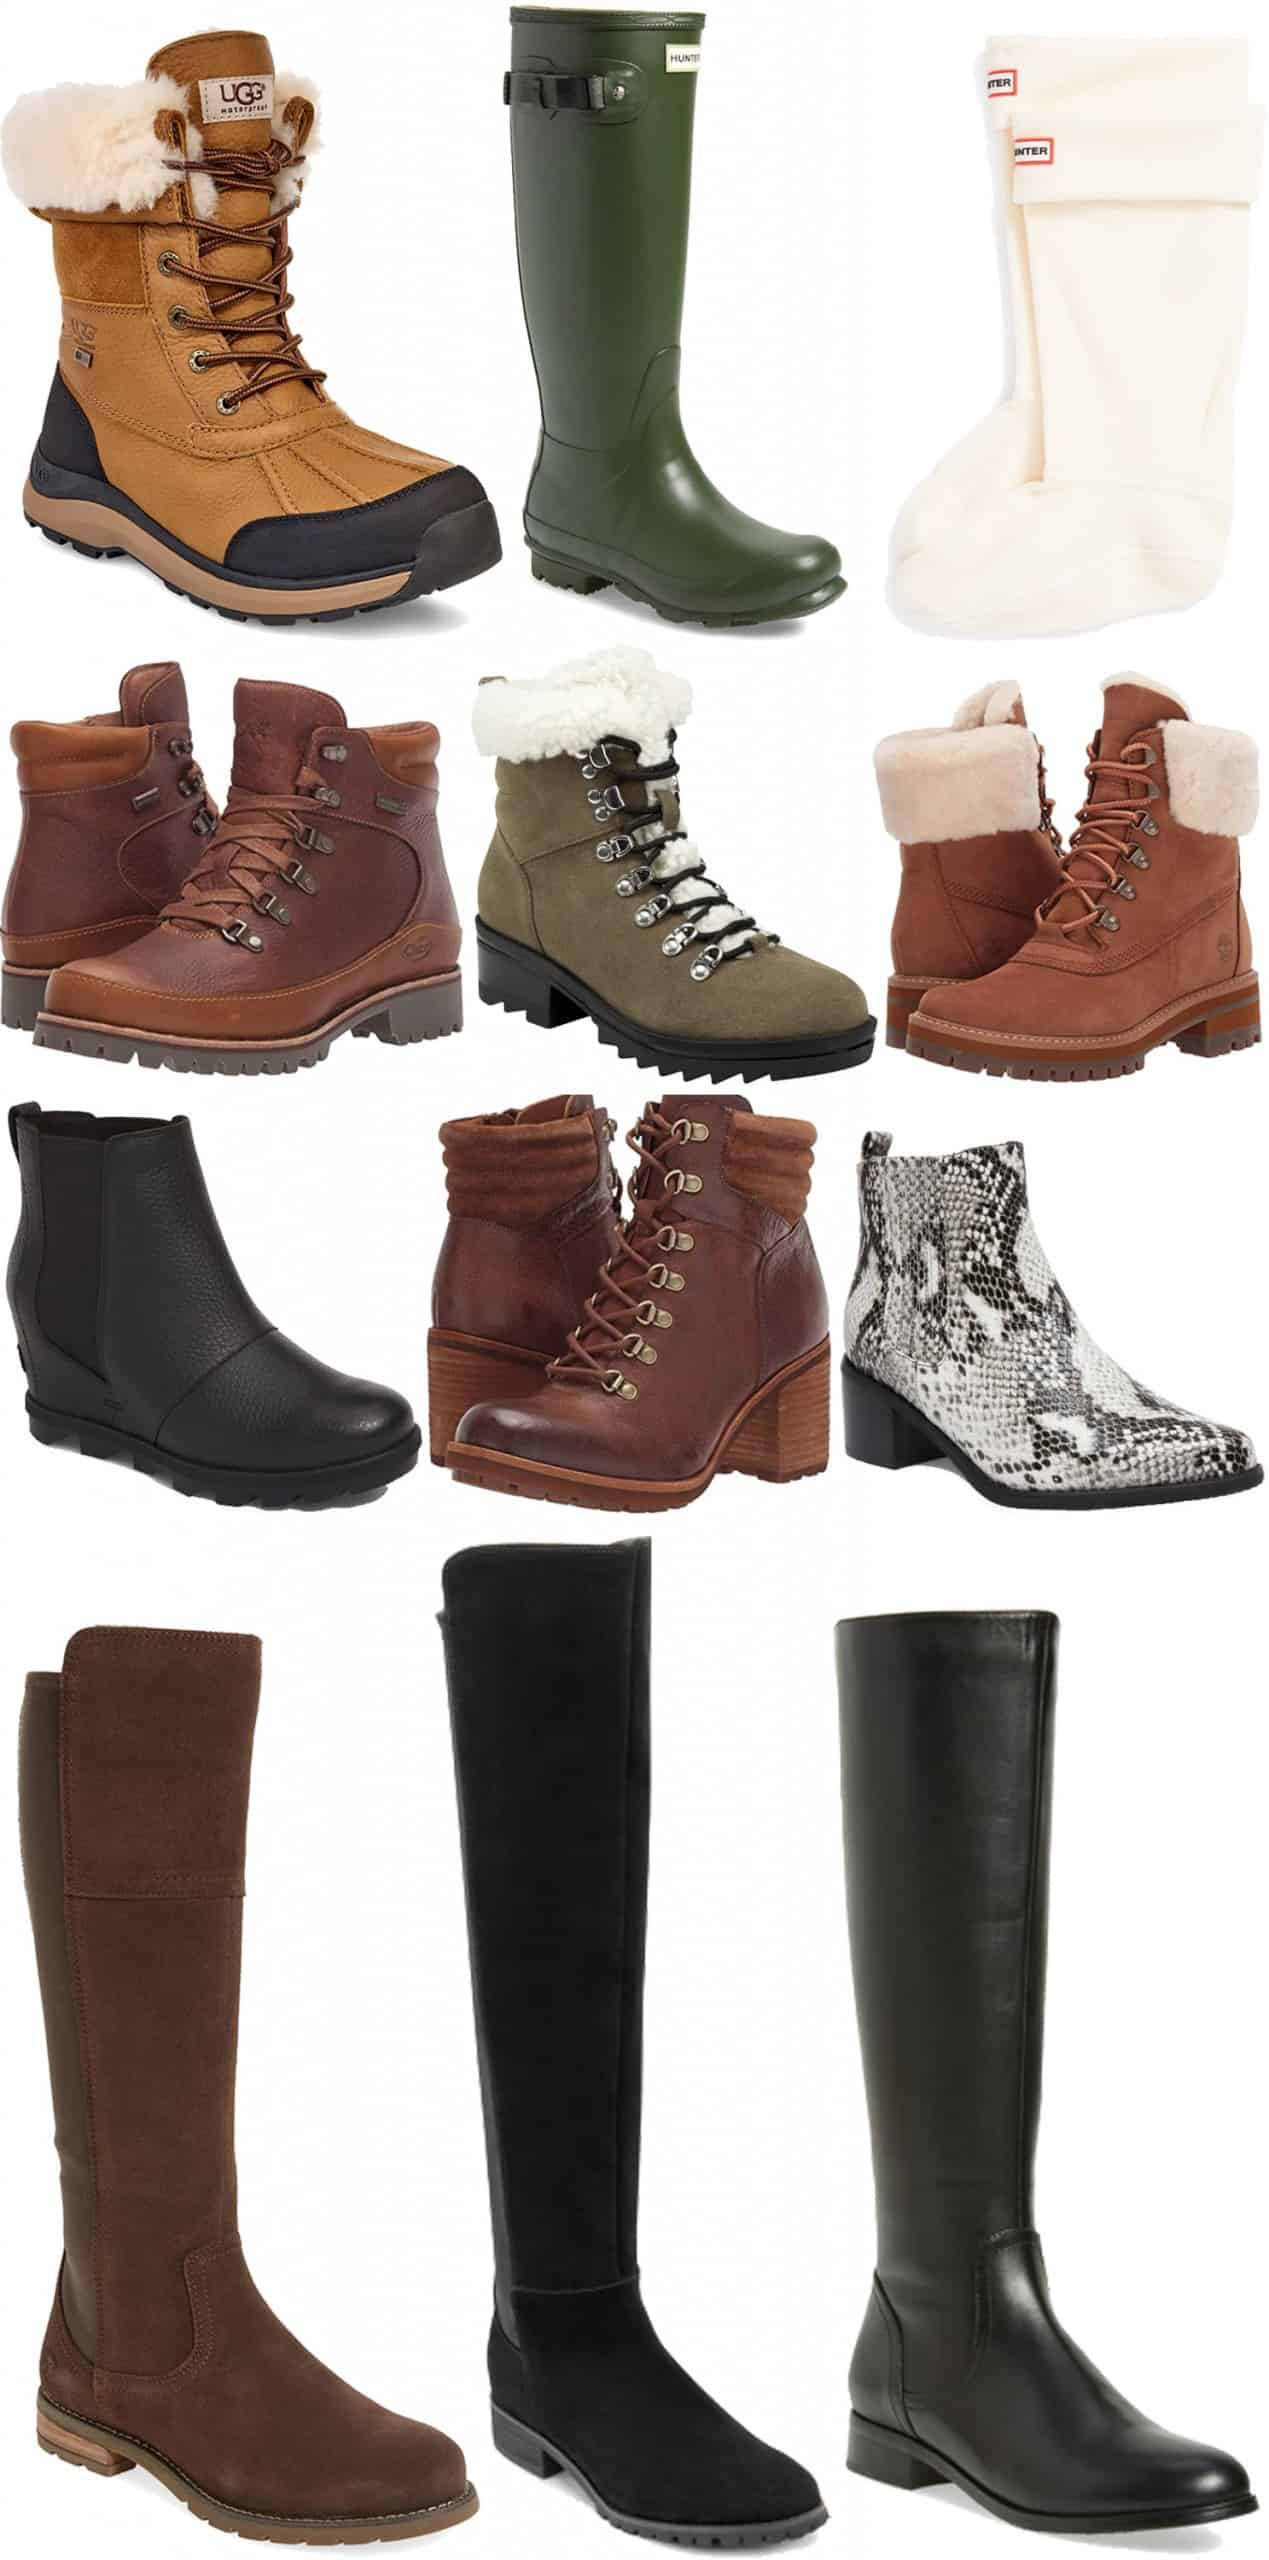 12 Winter Weather Boots